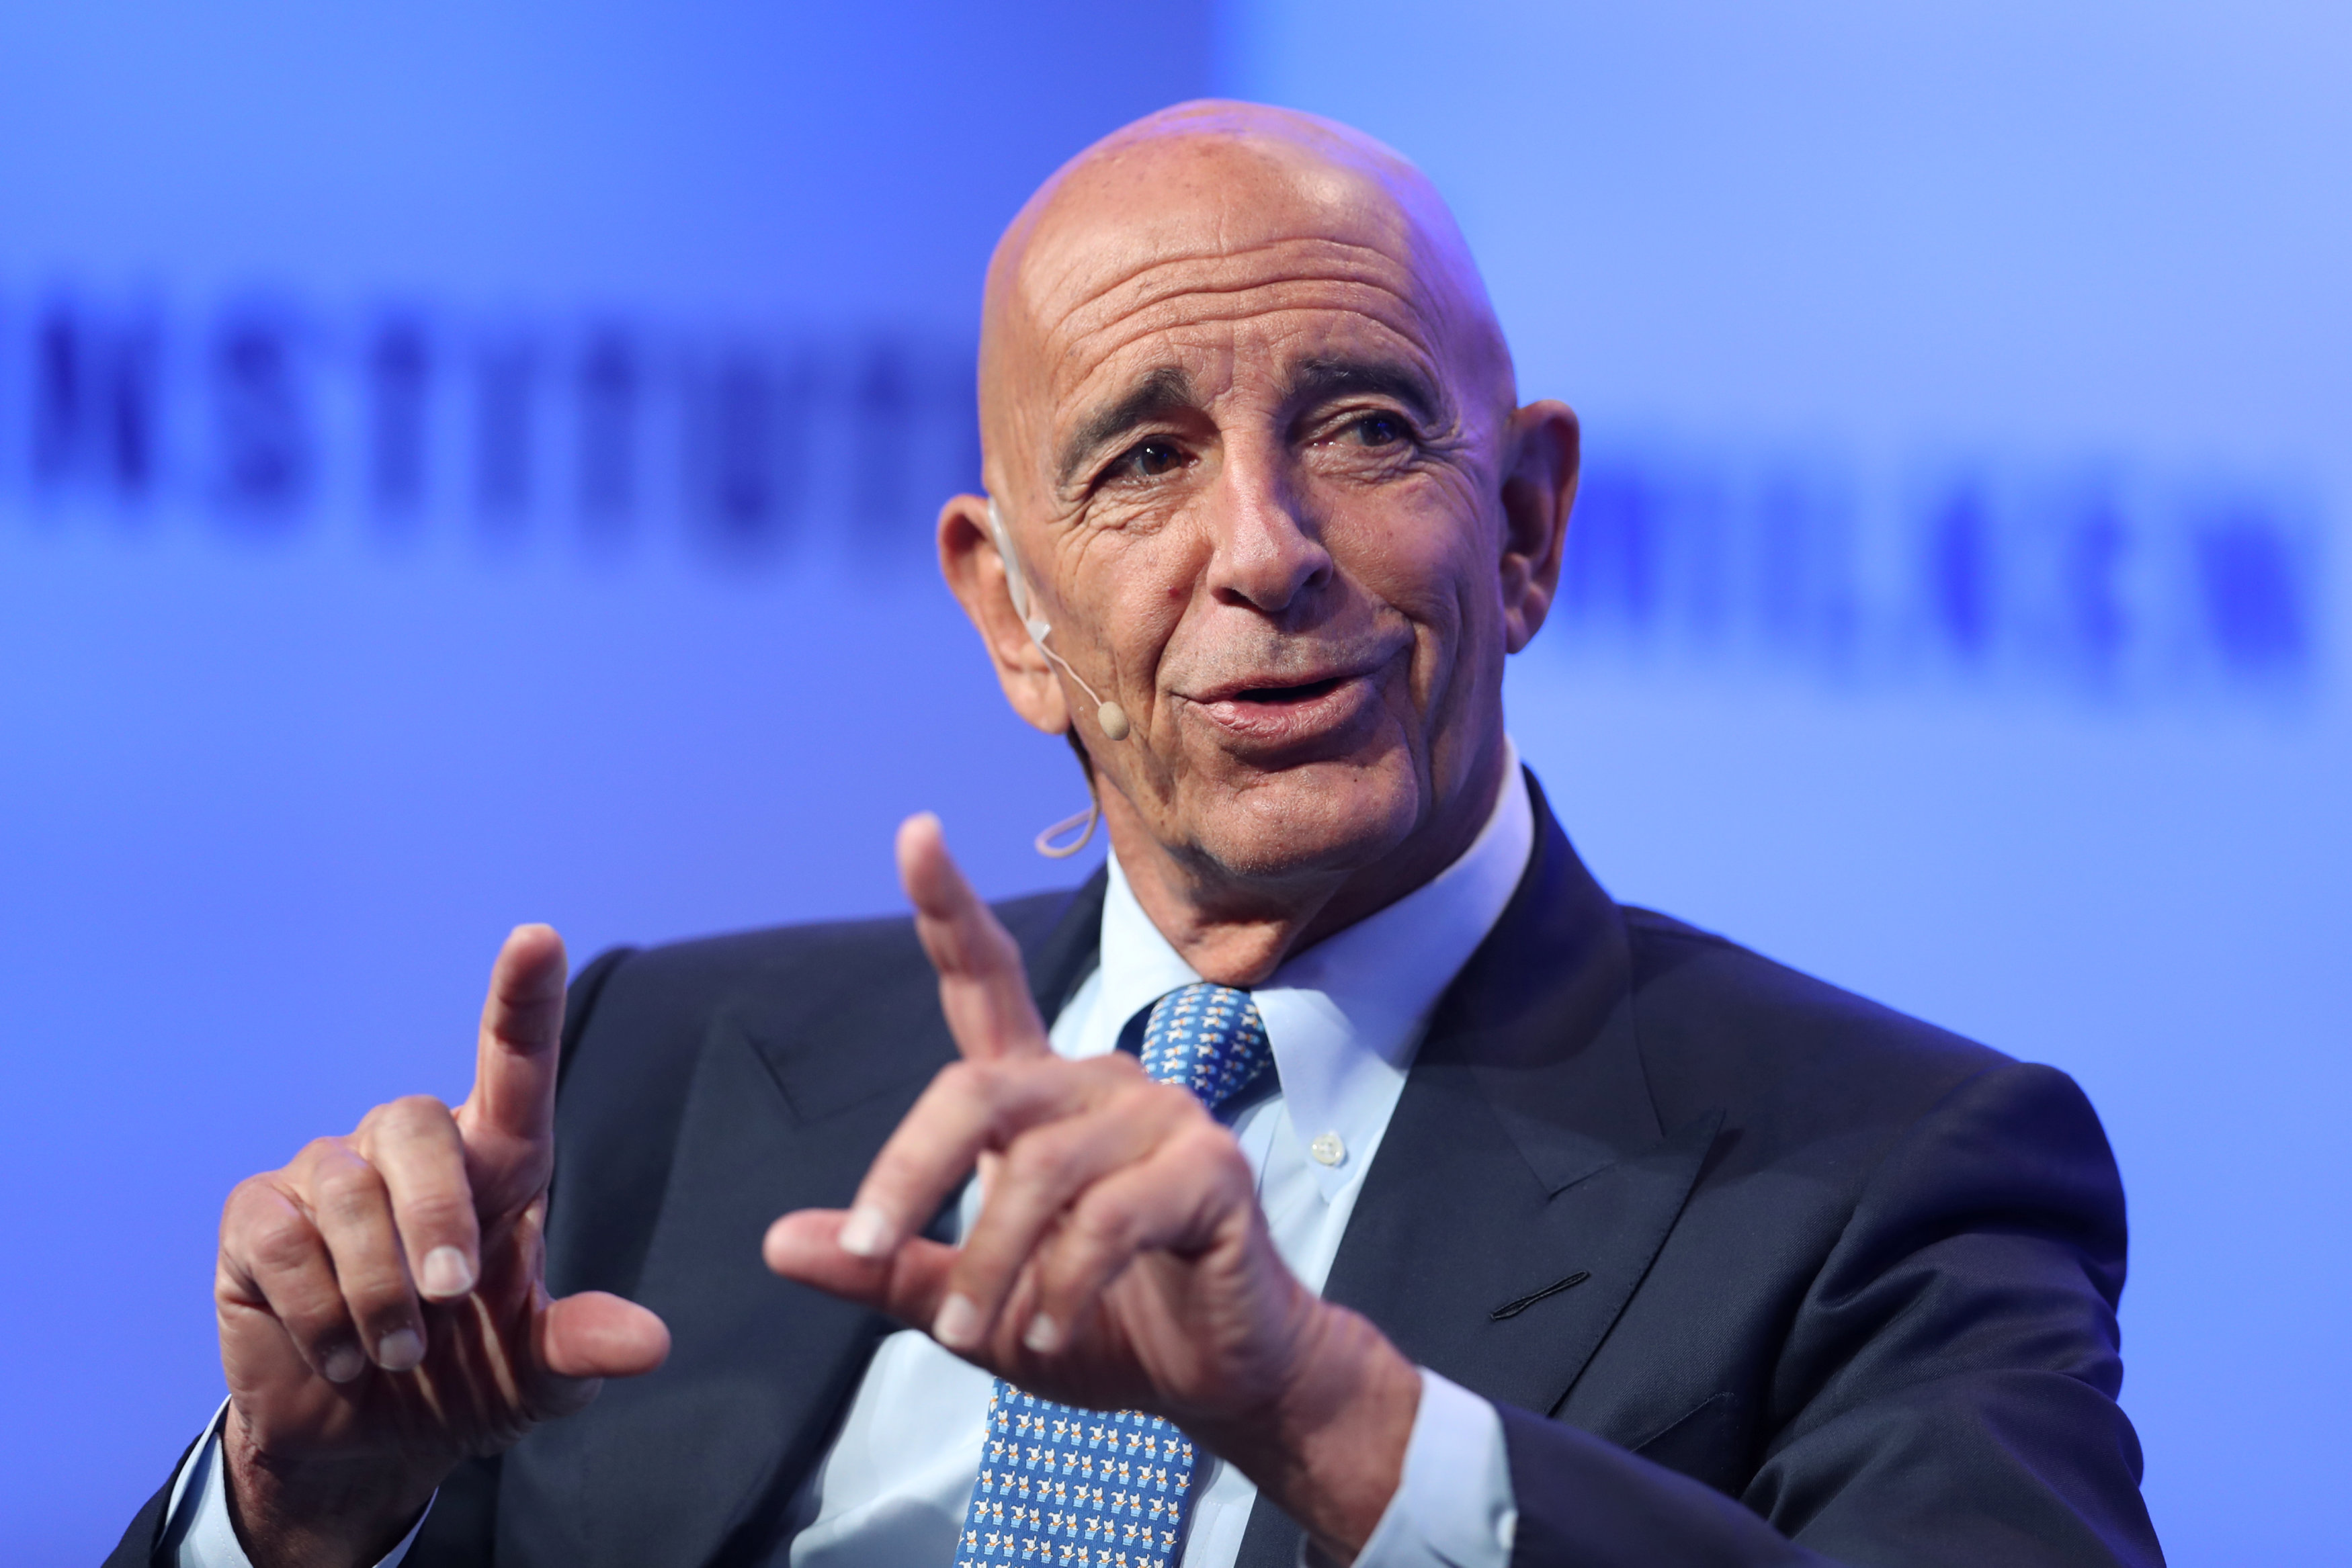 Thomas Barrack, Executive Chairman, Colony Northstar, speaks at the Milken Institute's 21st Global Conference in Beverly Hills, California, U.S. May 1, 2018. REUTERS/Lucy Nicholson